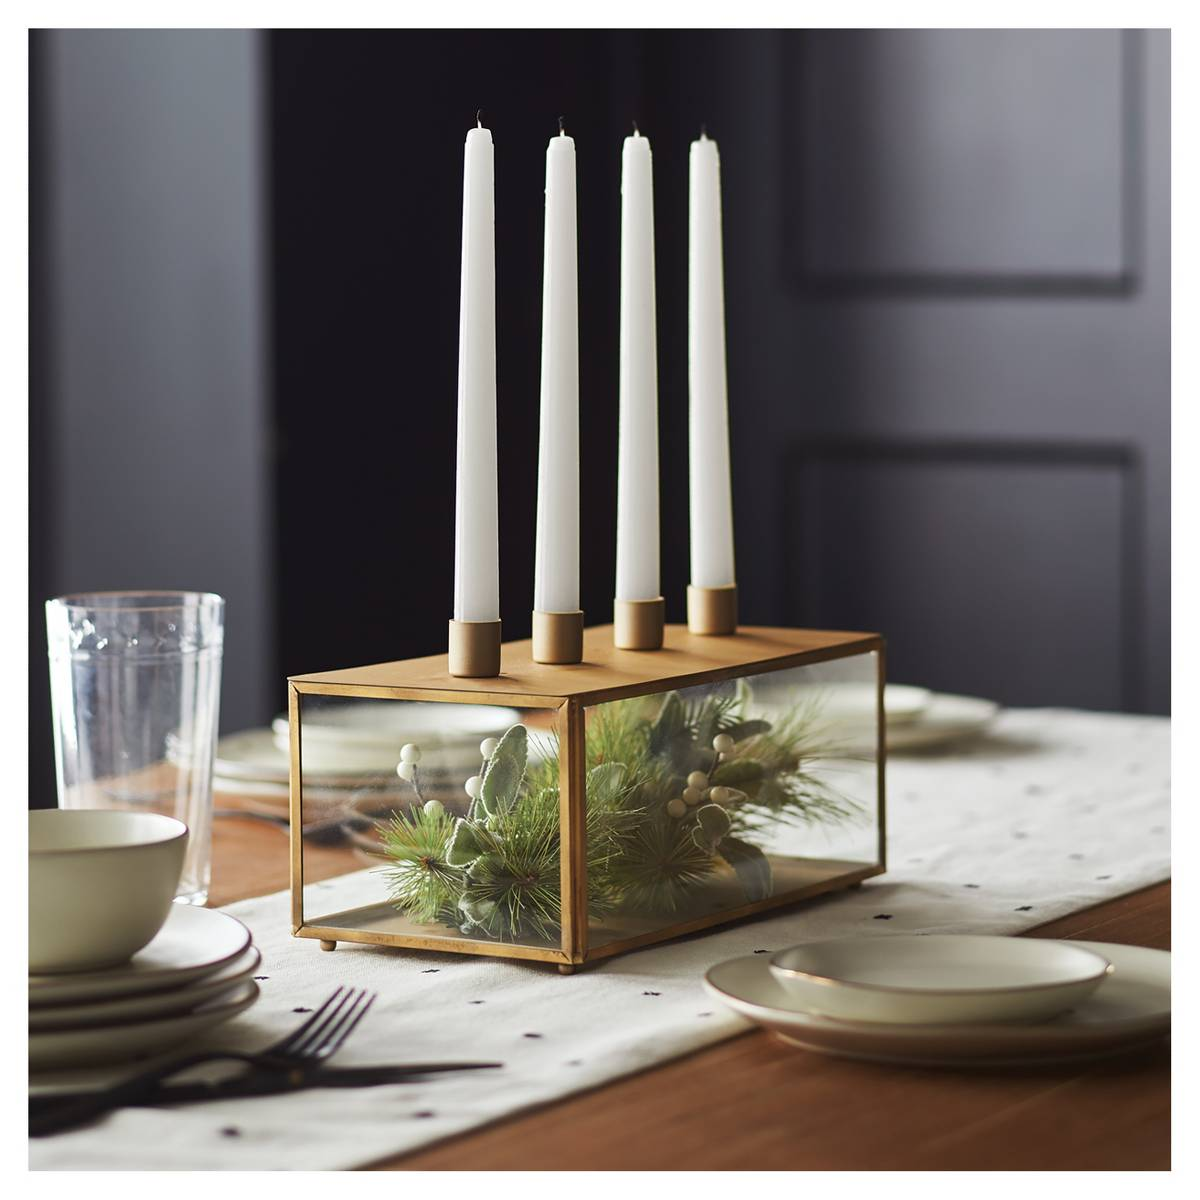 Ok, I kind of love this taper candleholder! It will be great for the holidays filled with greenery, but you can mix it up the rest of the year with other things.